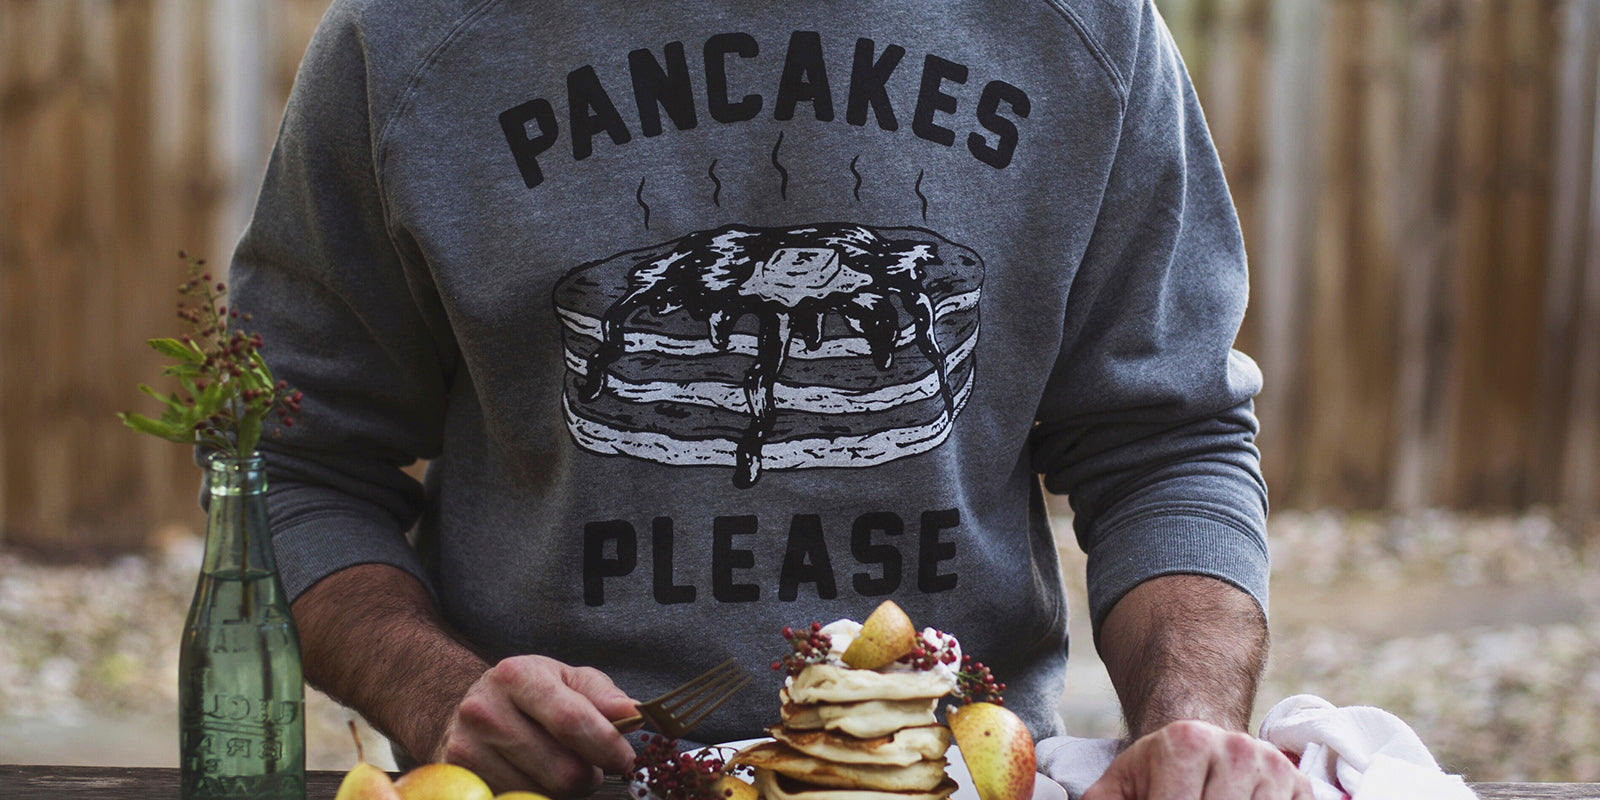 Pancakes Please Men's Vintage Raglan Crewneck Sweatshirt for Breakfast Brunch Foodie Food Lovers